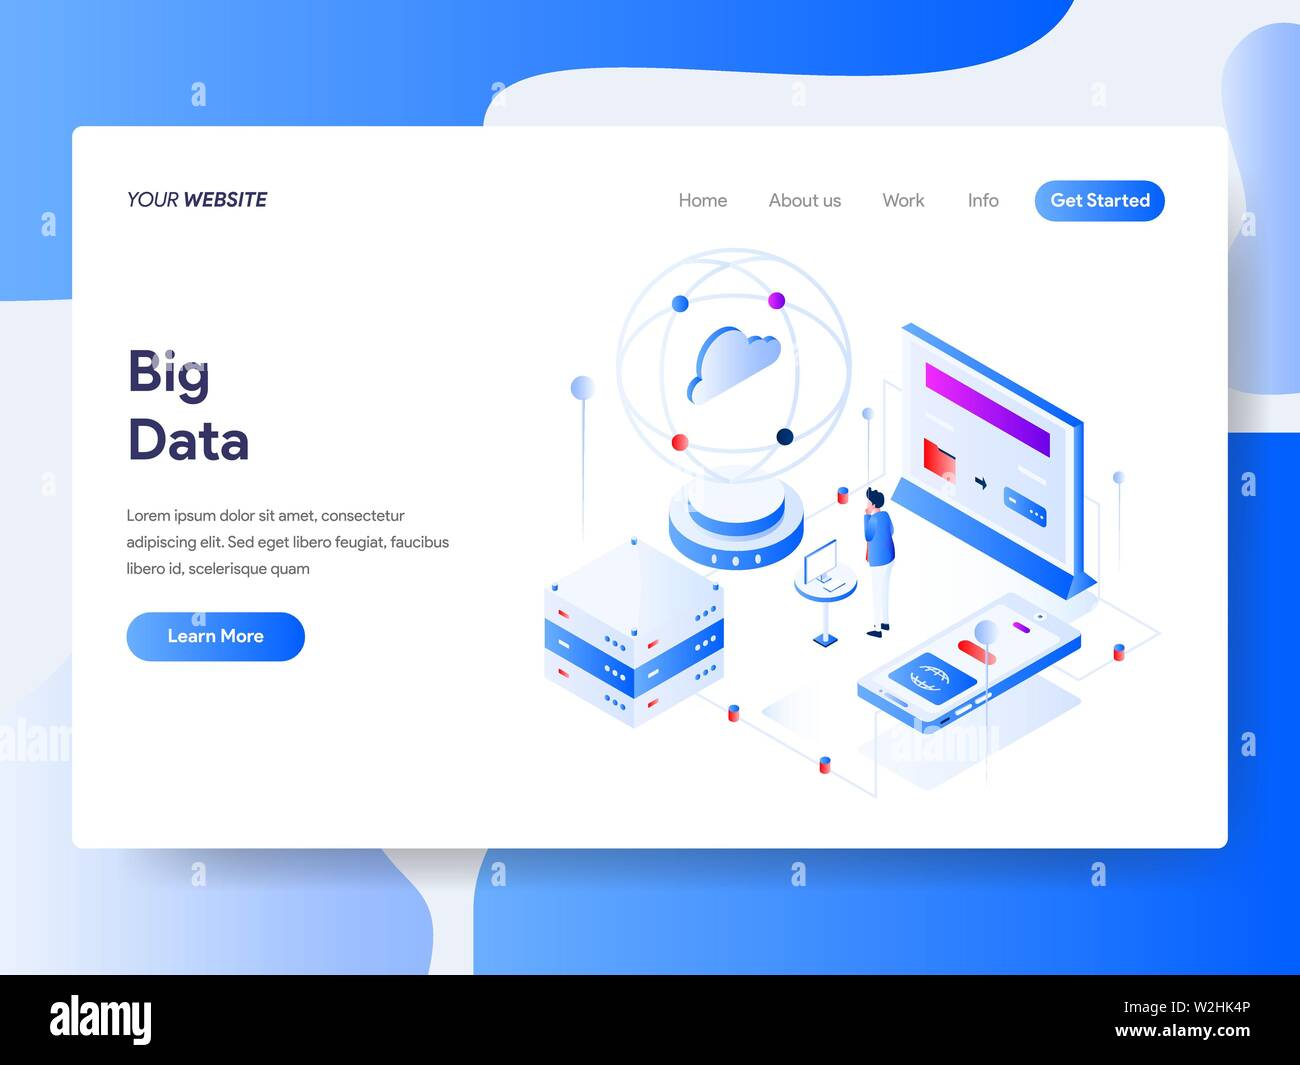 Landing page template of Big Data Isometric Illustration Concept. Isometric flat design concept of web page design for website and mobile website.Vect - Stock Image